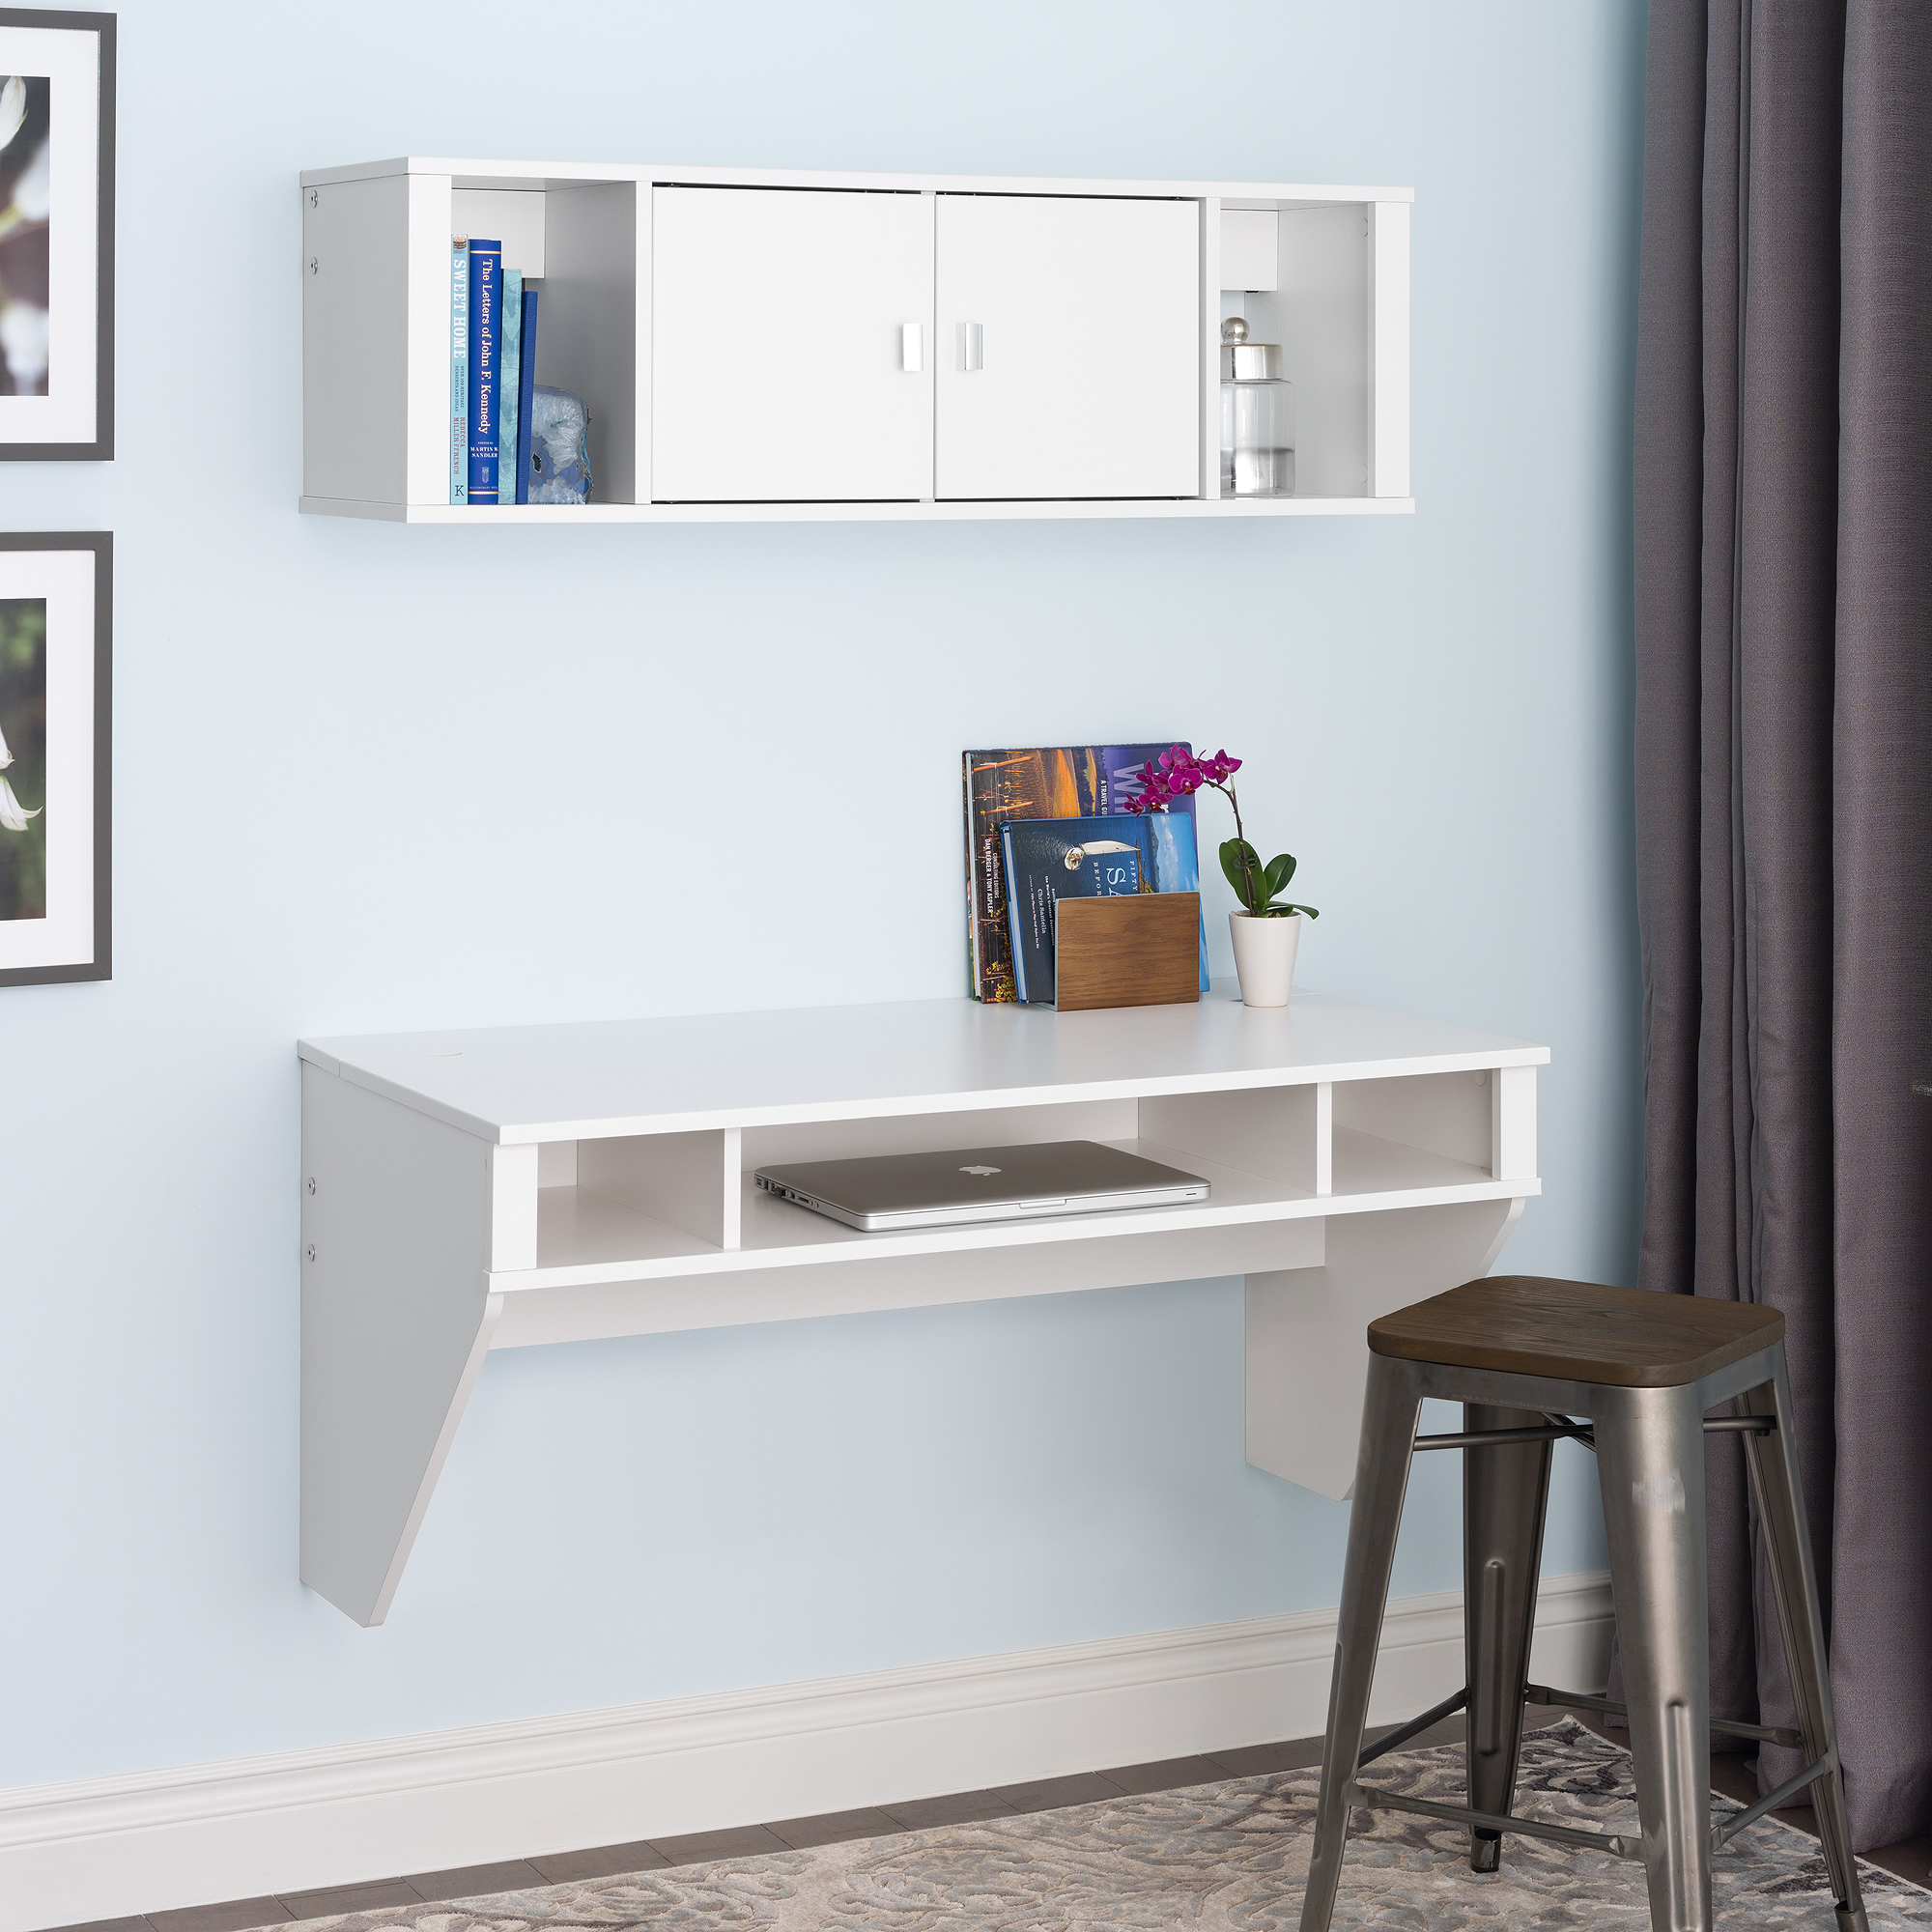 Wall mounted computer table designs - Wall Mounted Computer Table Designs 37